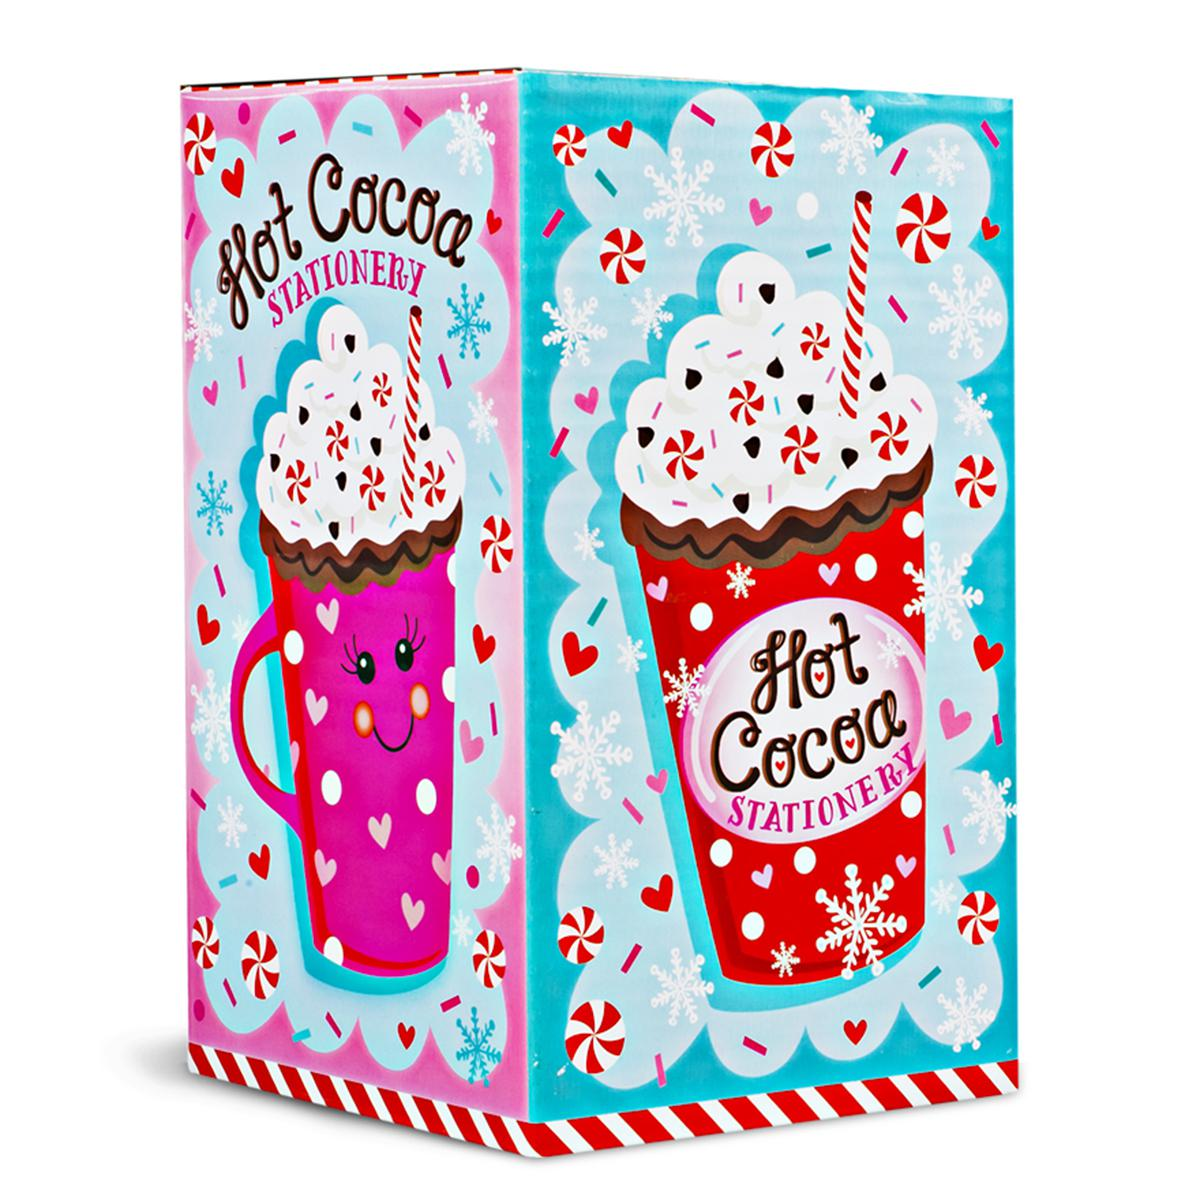 Hot Cocoa Stationery